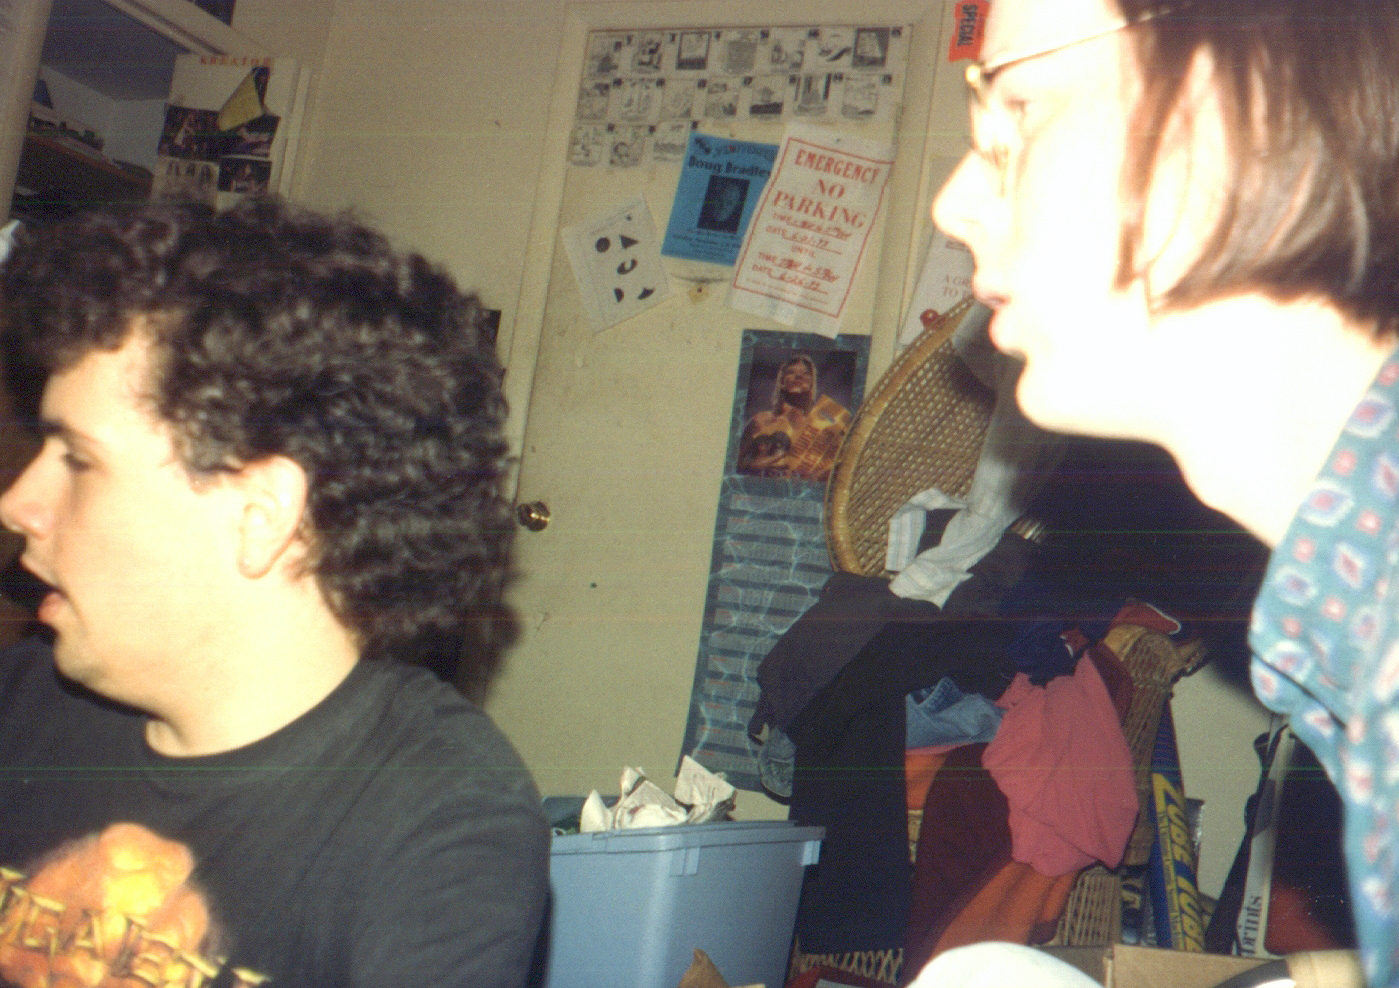 199407 - Clint's room - Clint, Brent - looking off to the side - 0492